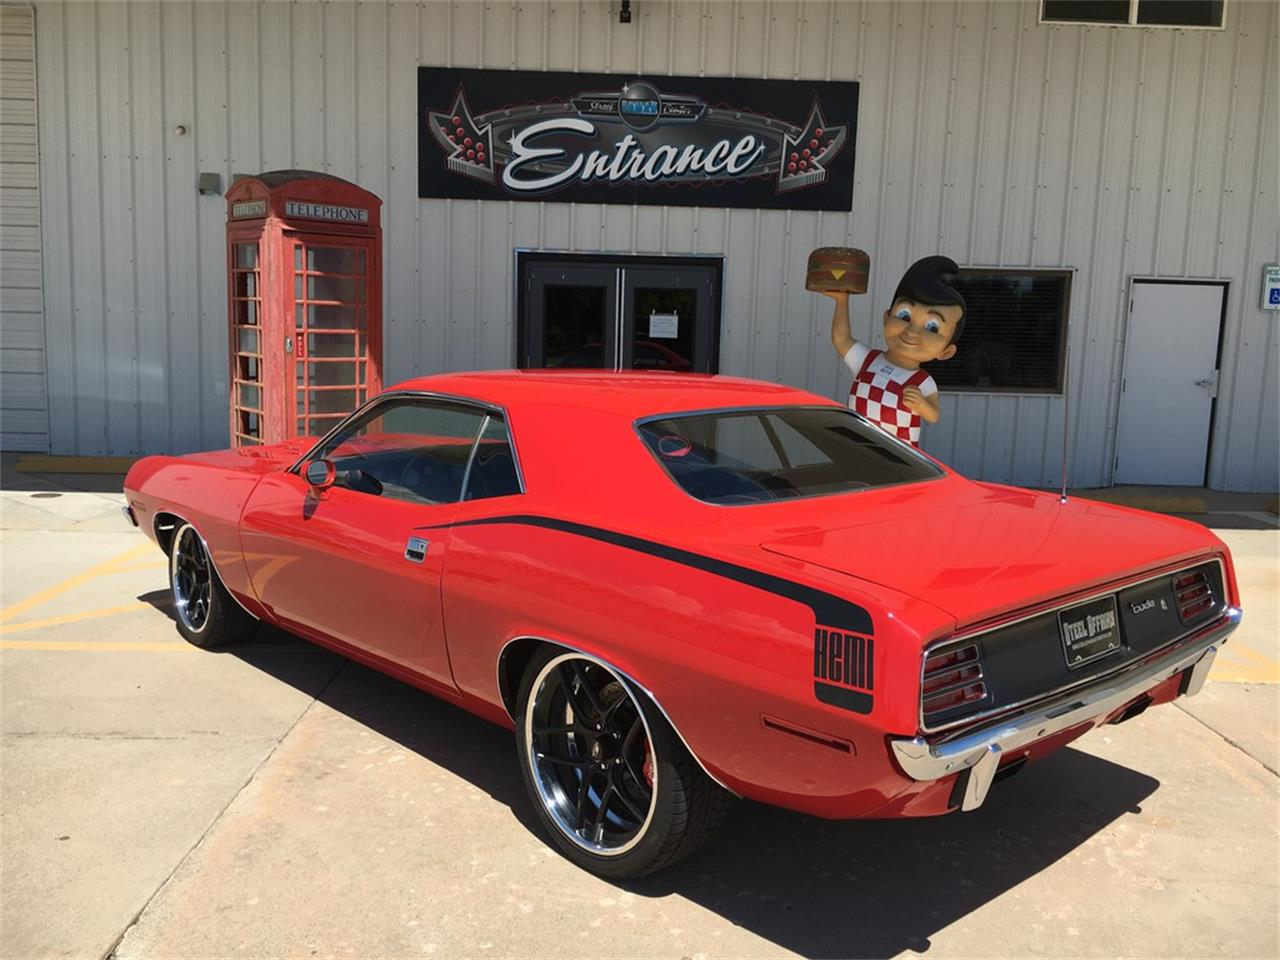 Large Picture of '70 Plymouth Cuda located in Colorado - $90,000.00 - J677